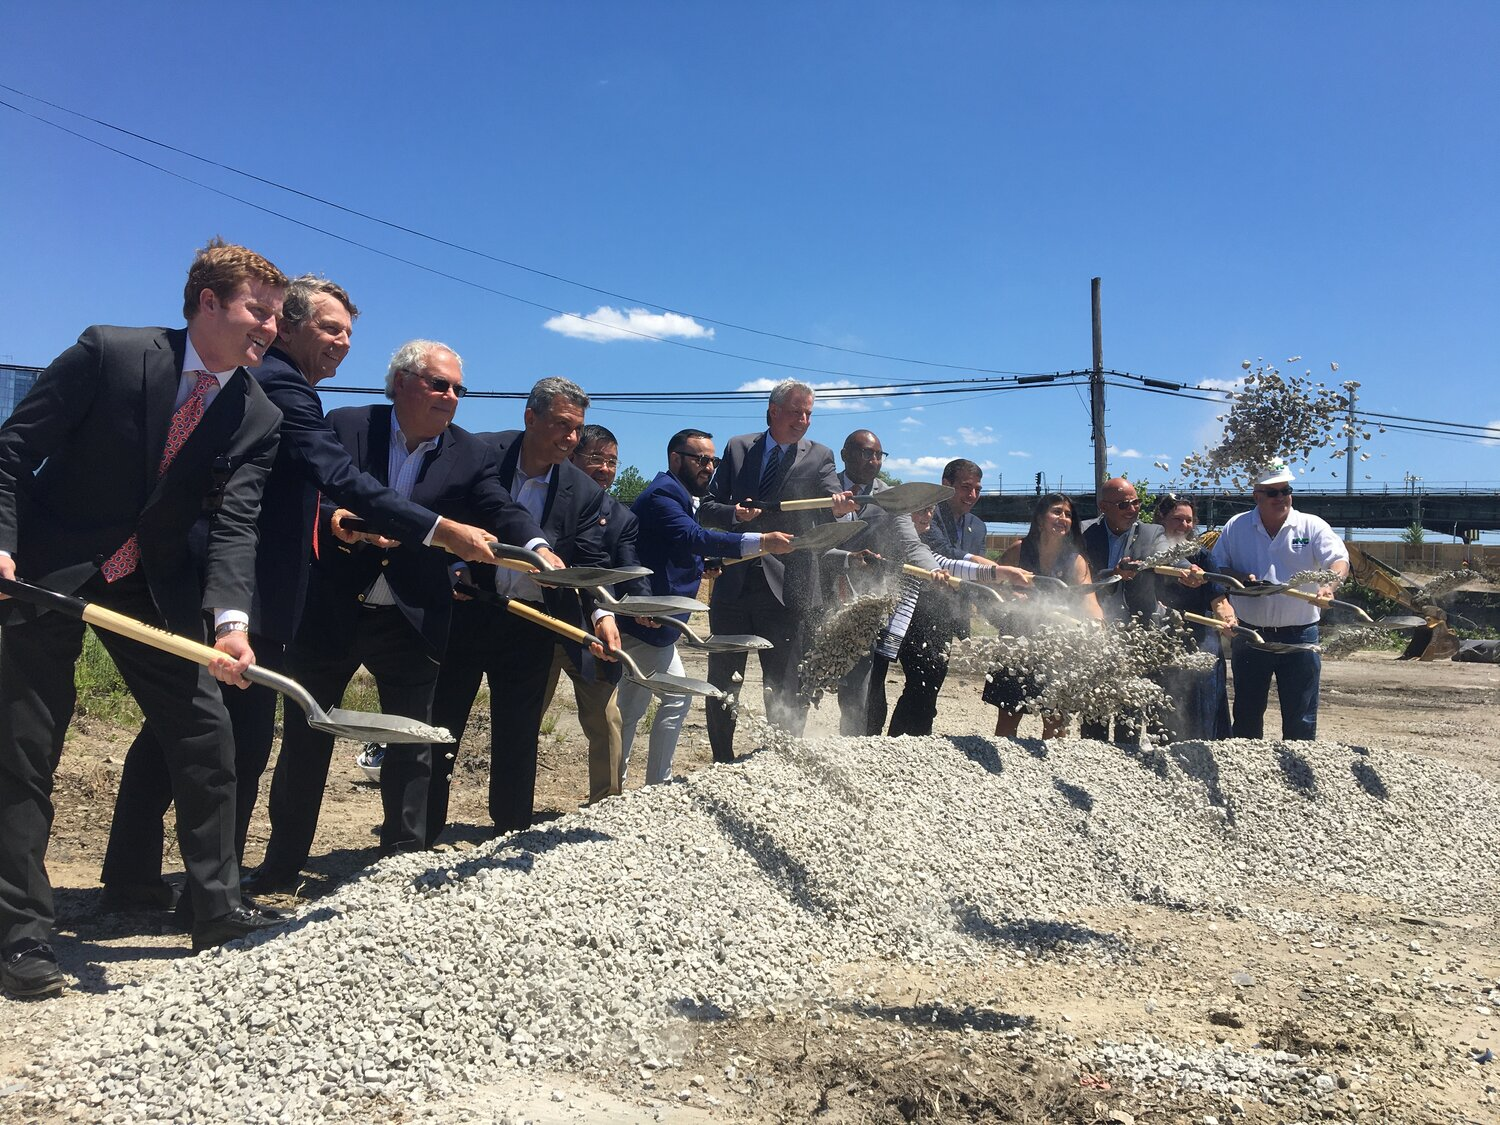 Electeds break ground on Willets Point development  — Queens Daily Eagle